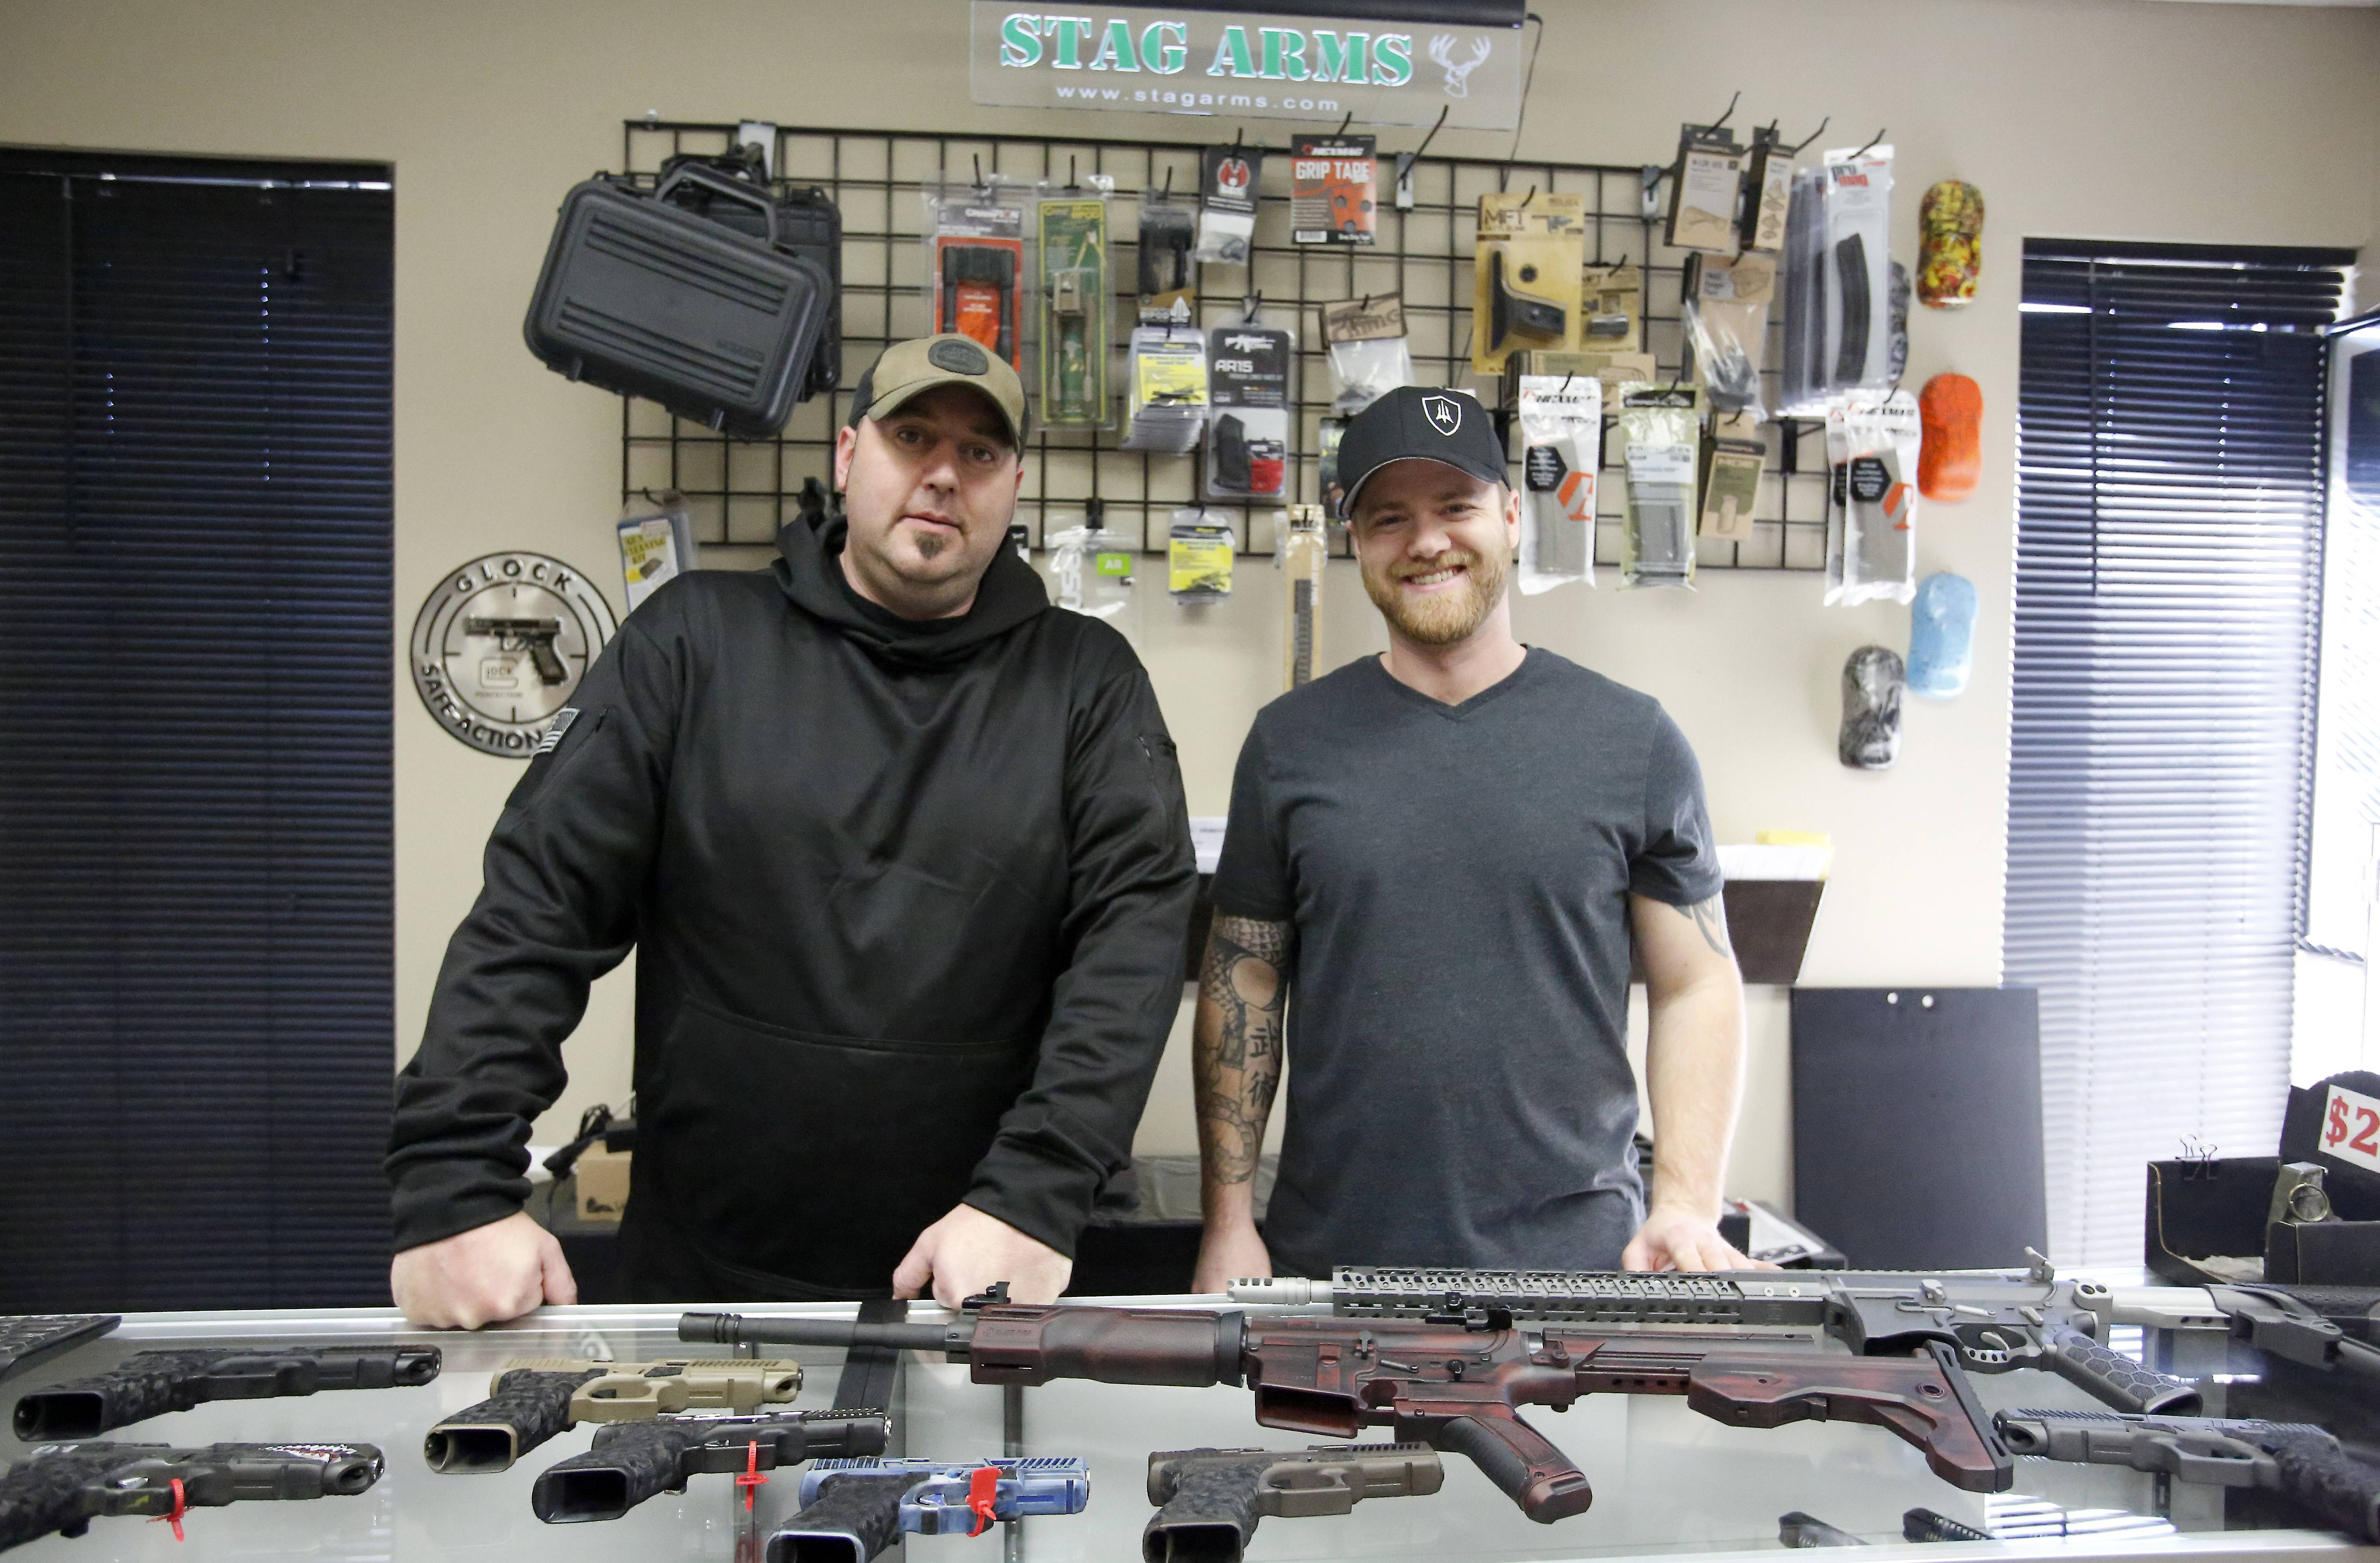 Ty Cobb, left, and Jeremy Rainey, of Trident Defense, display some of the customized firearms they have created. East Dundee recently approved a special-use permit that allows the business to sell its specialized guns on the site.